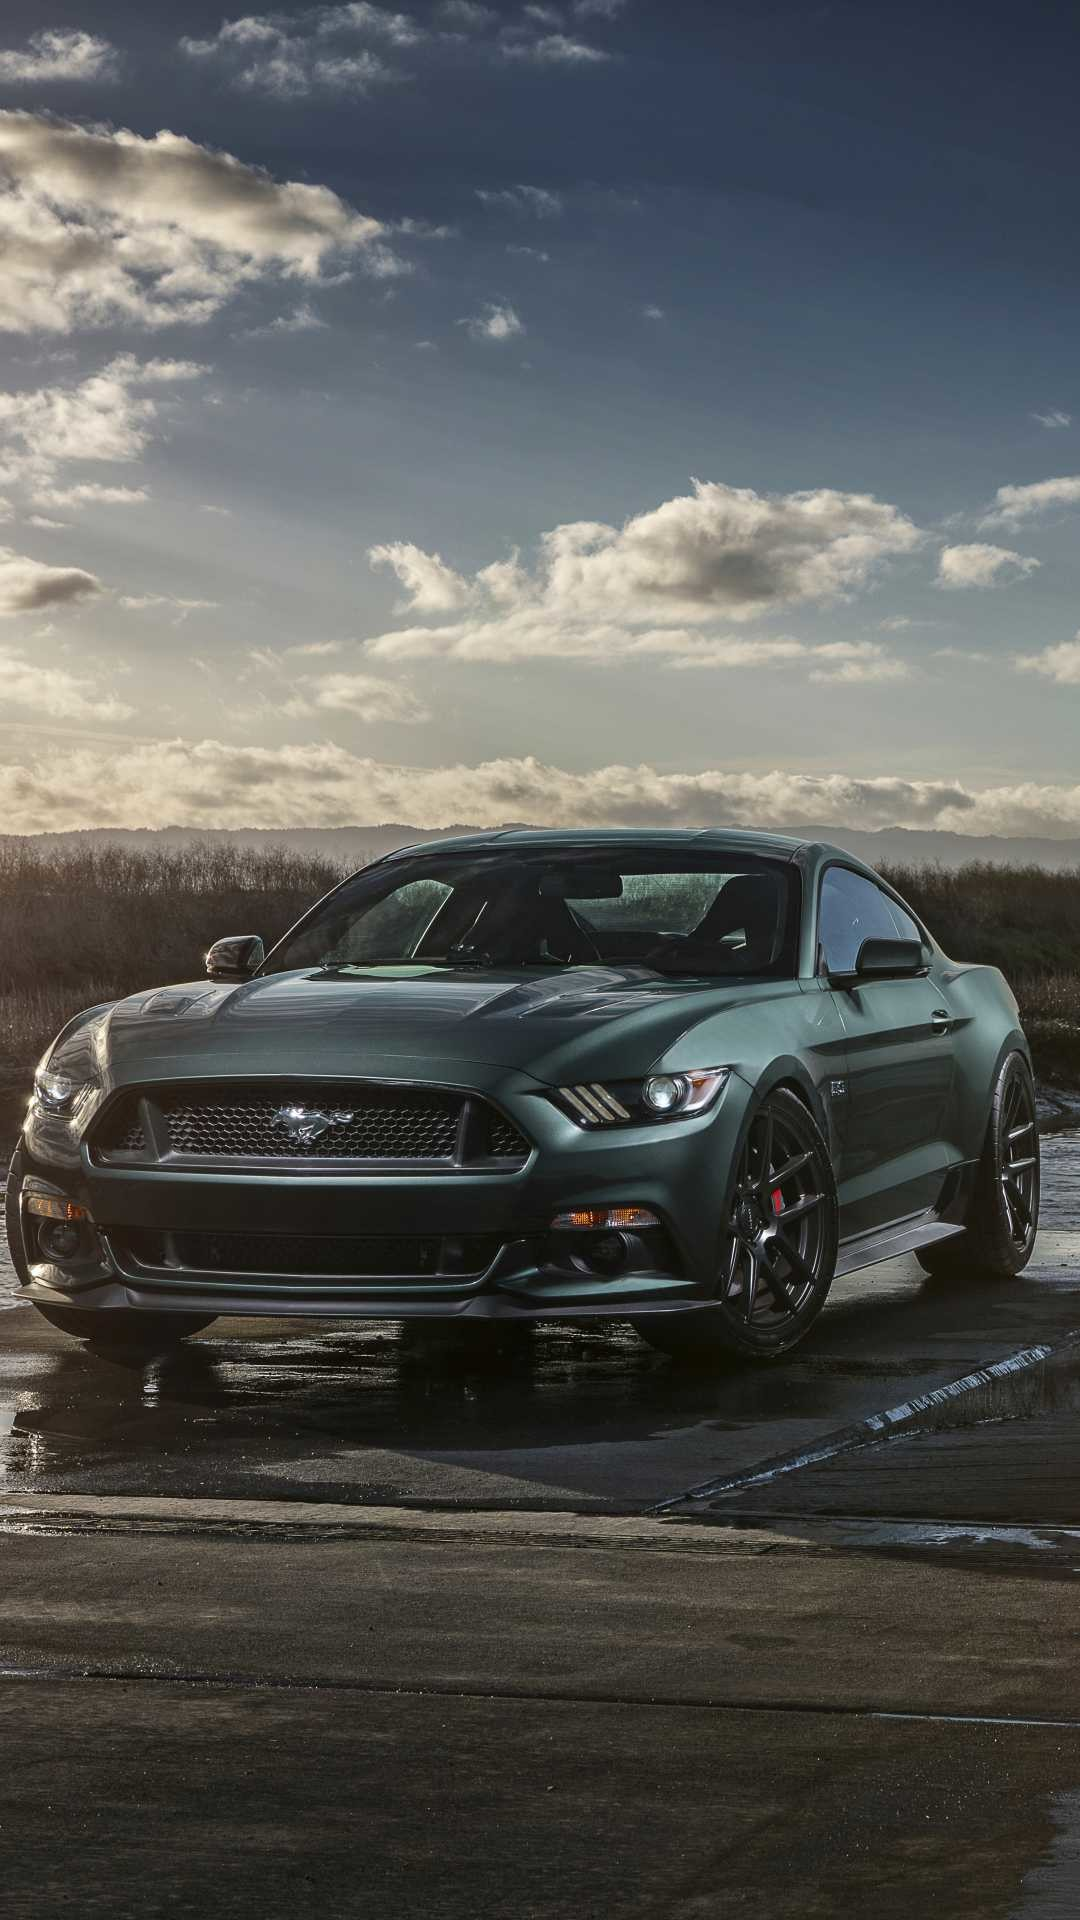 1080x1920 - Ford Mustang GT Wallpapers 22